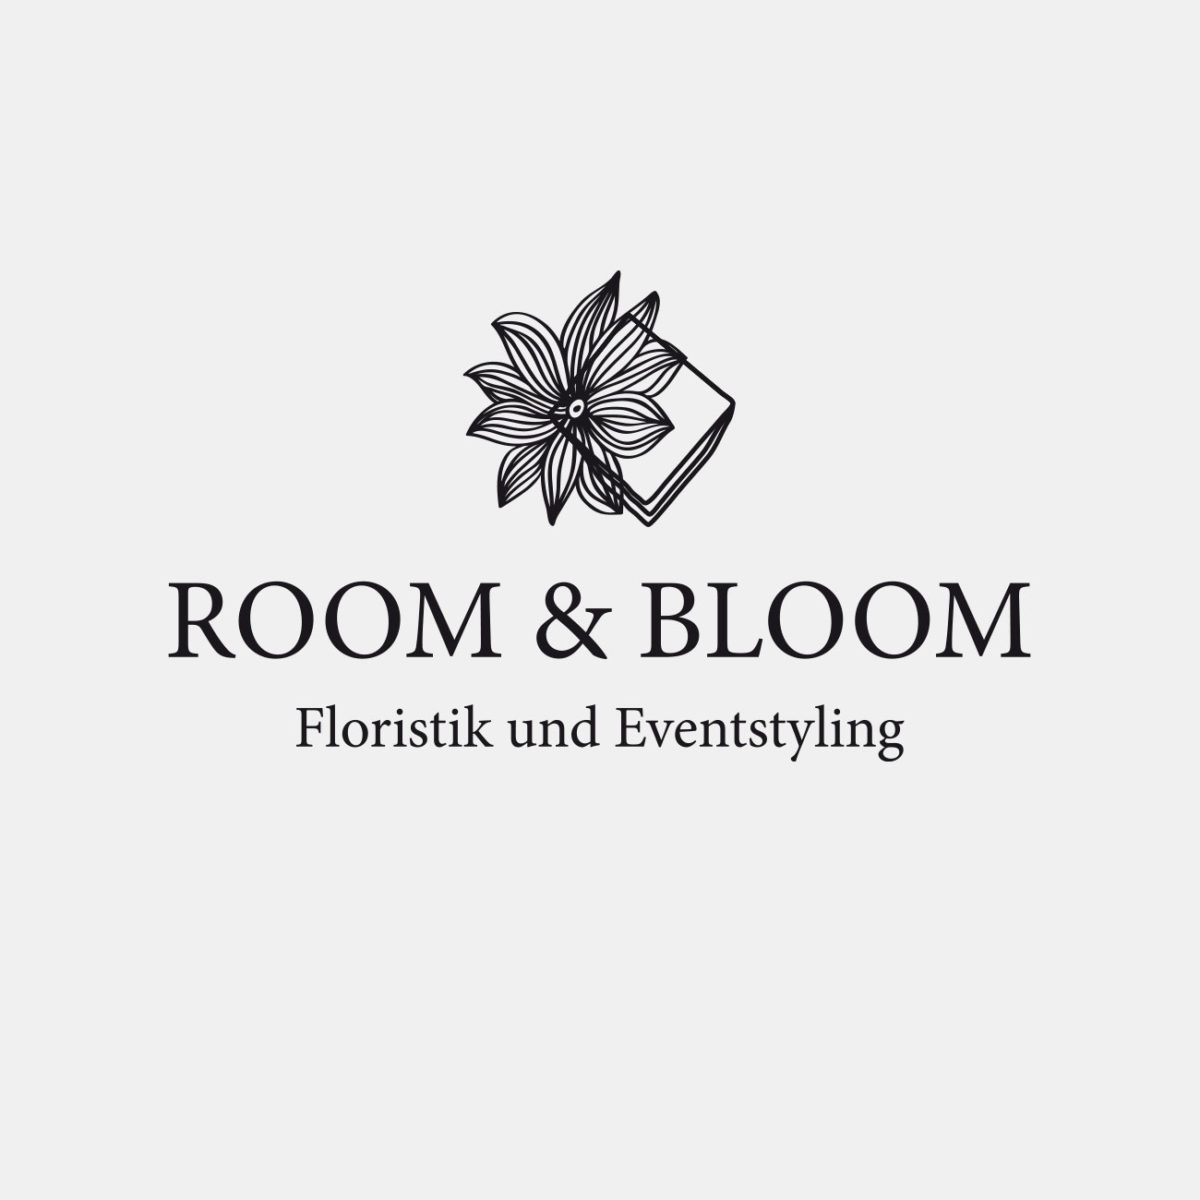 Room & Bloom Logodesign